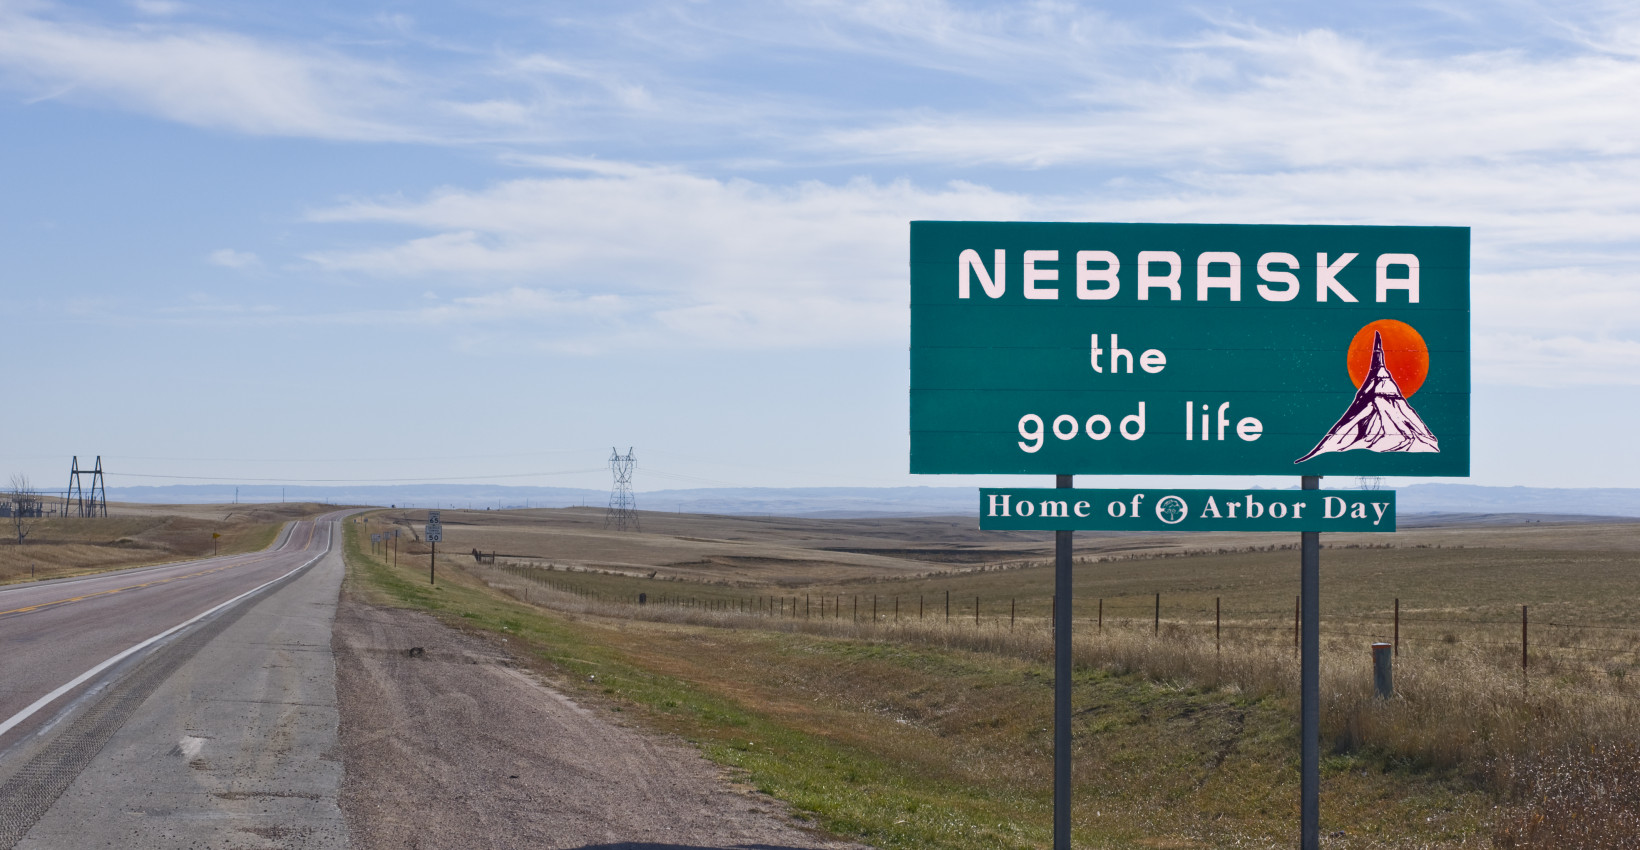 Nebraska the good life road sign on a highway.